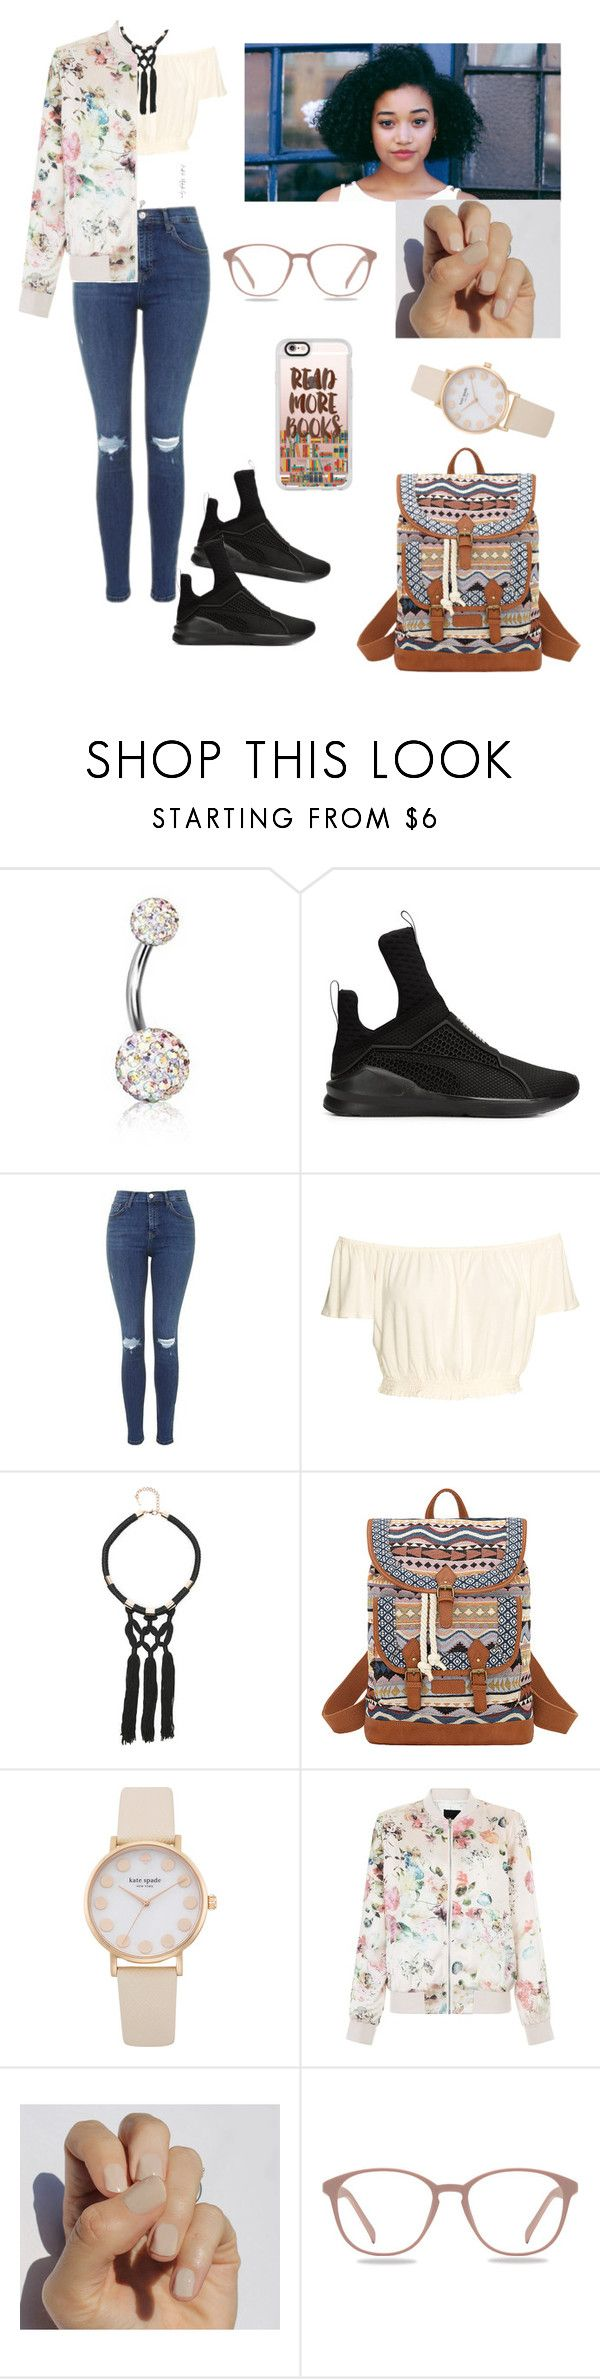 """""""The simplest outfit and you could still rock it❕❕"""" by tai-rah on Polyvore featuring Bling Jewelry, Puma, Topshop, Bebe, Bandana, New Look, Casetify, simple and schoolgirl"""